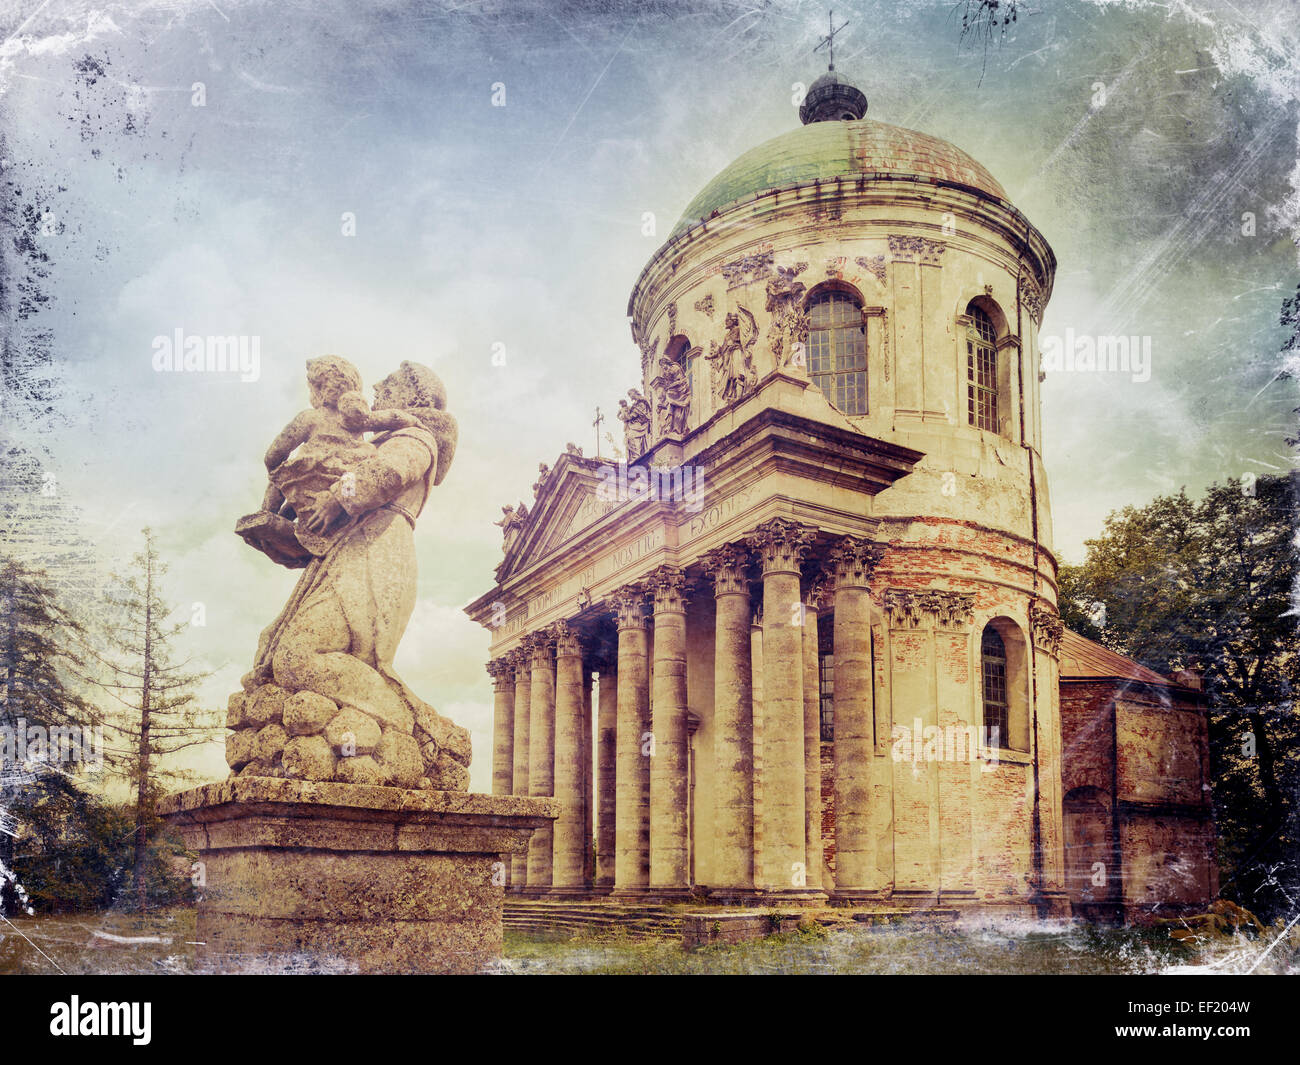 Roman Catholic Statues Stock Photos Amp Roman Catholic Statues Stock Images